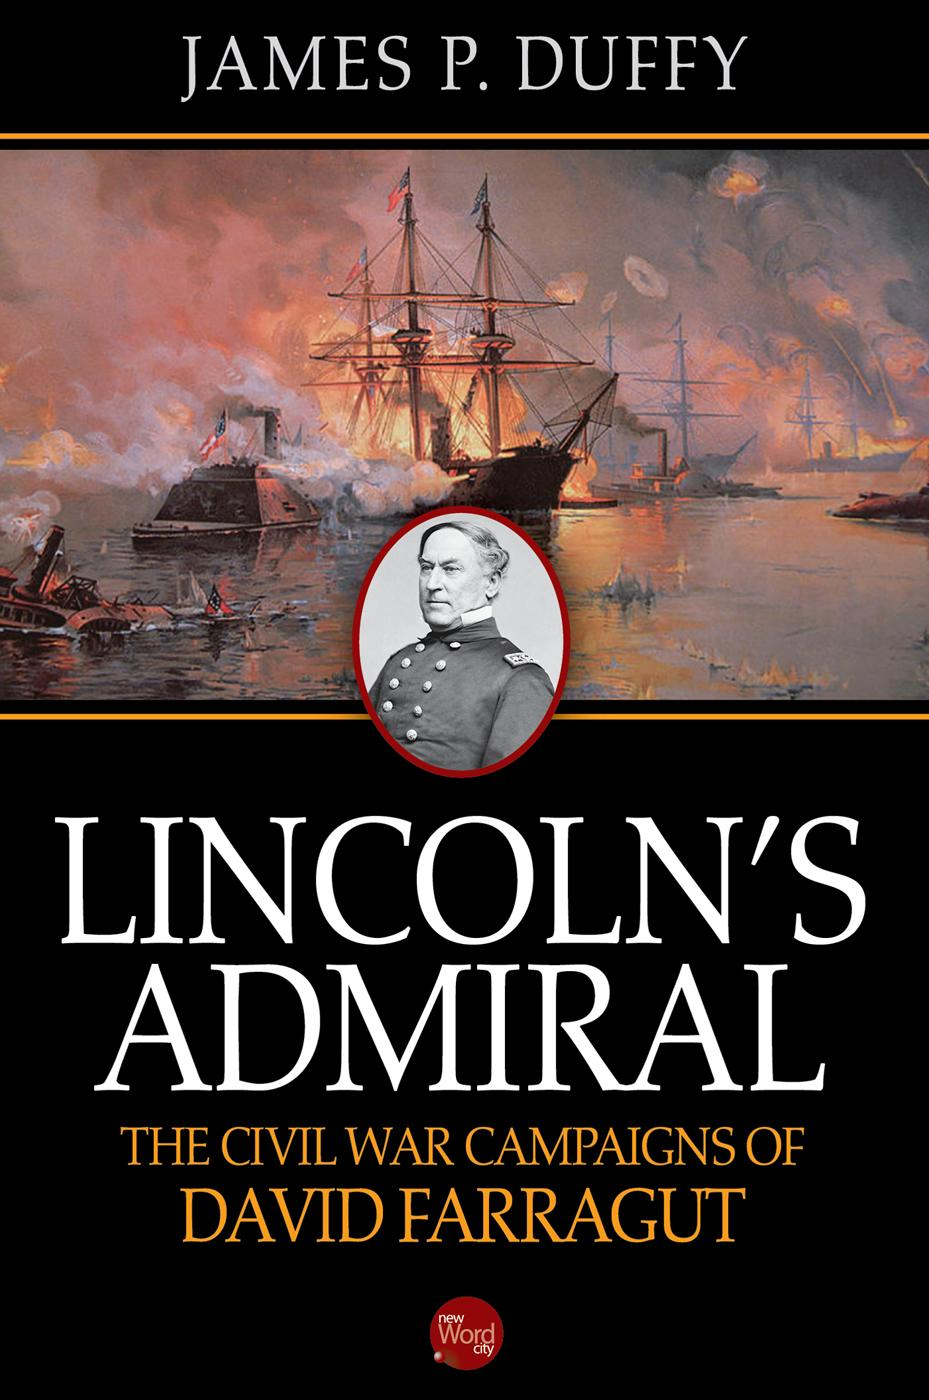 Lincoln's Admiral: The Civil War Campaigns of David Farragut